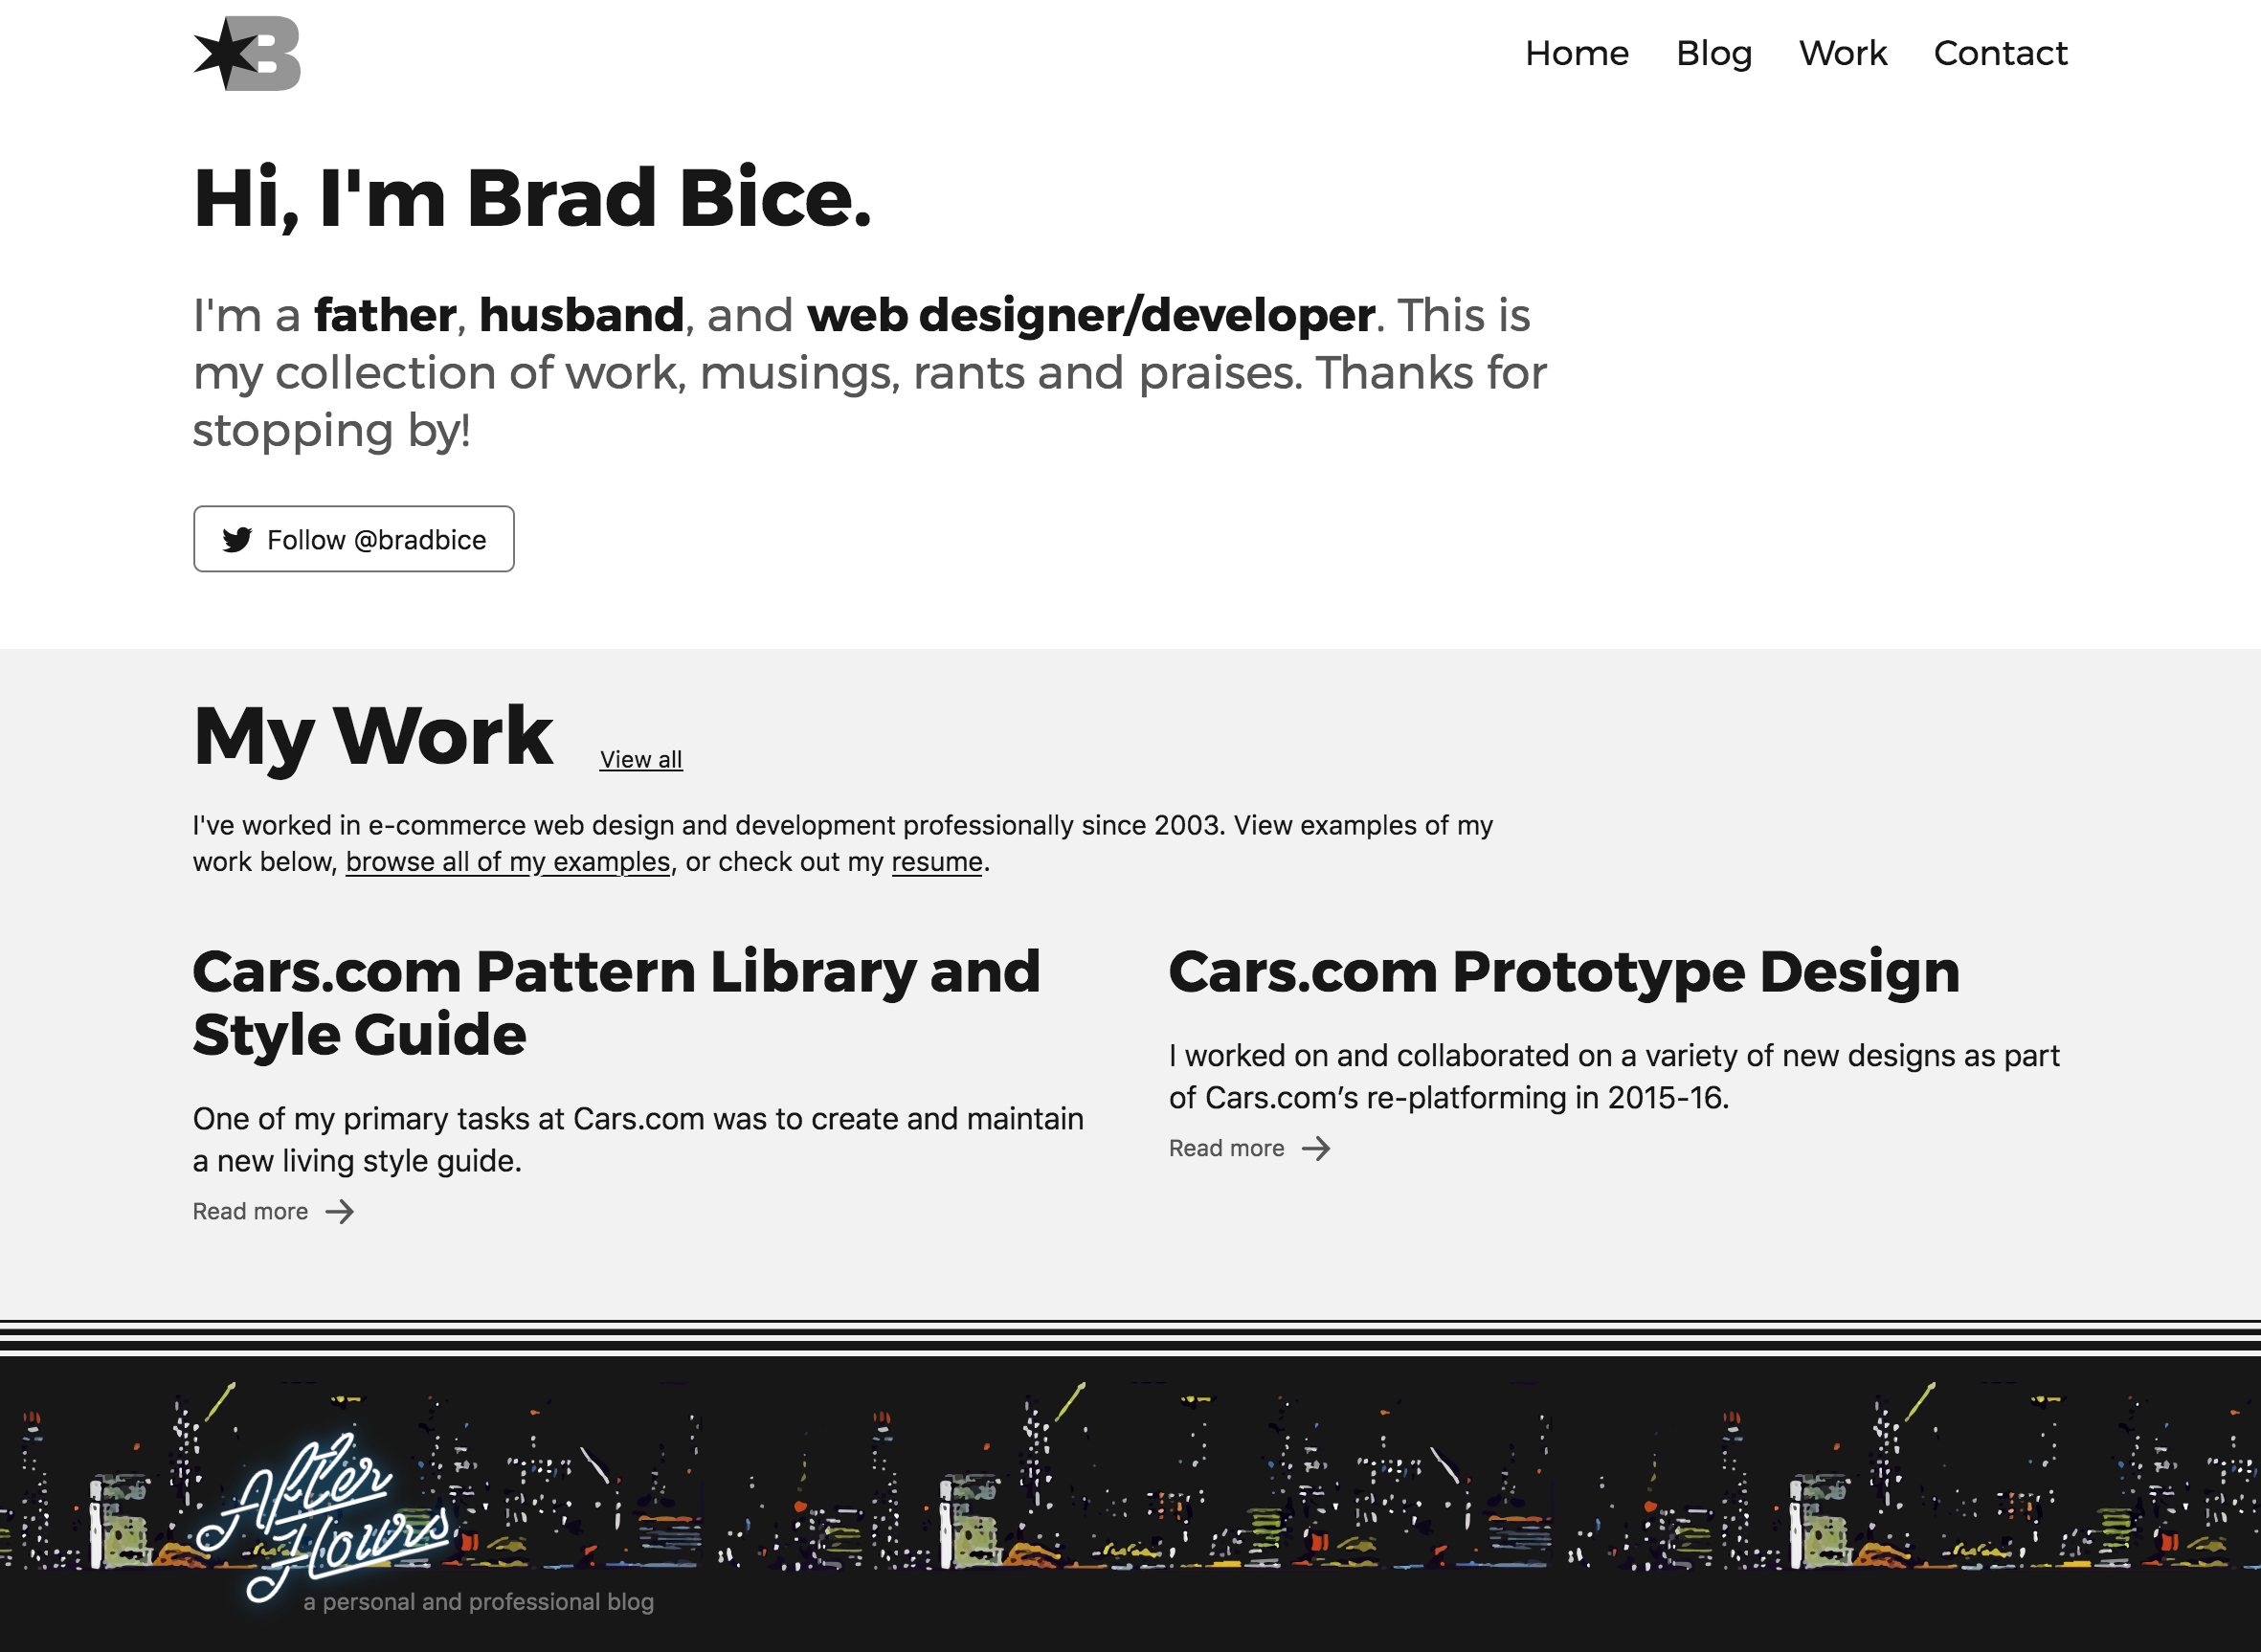 bradbice homepage in April 2018